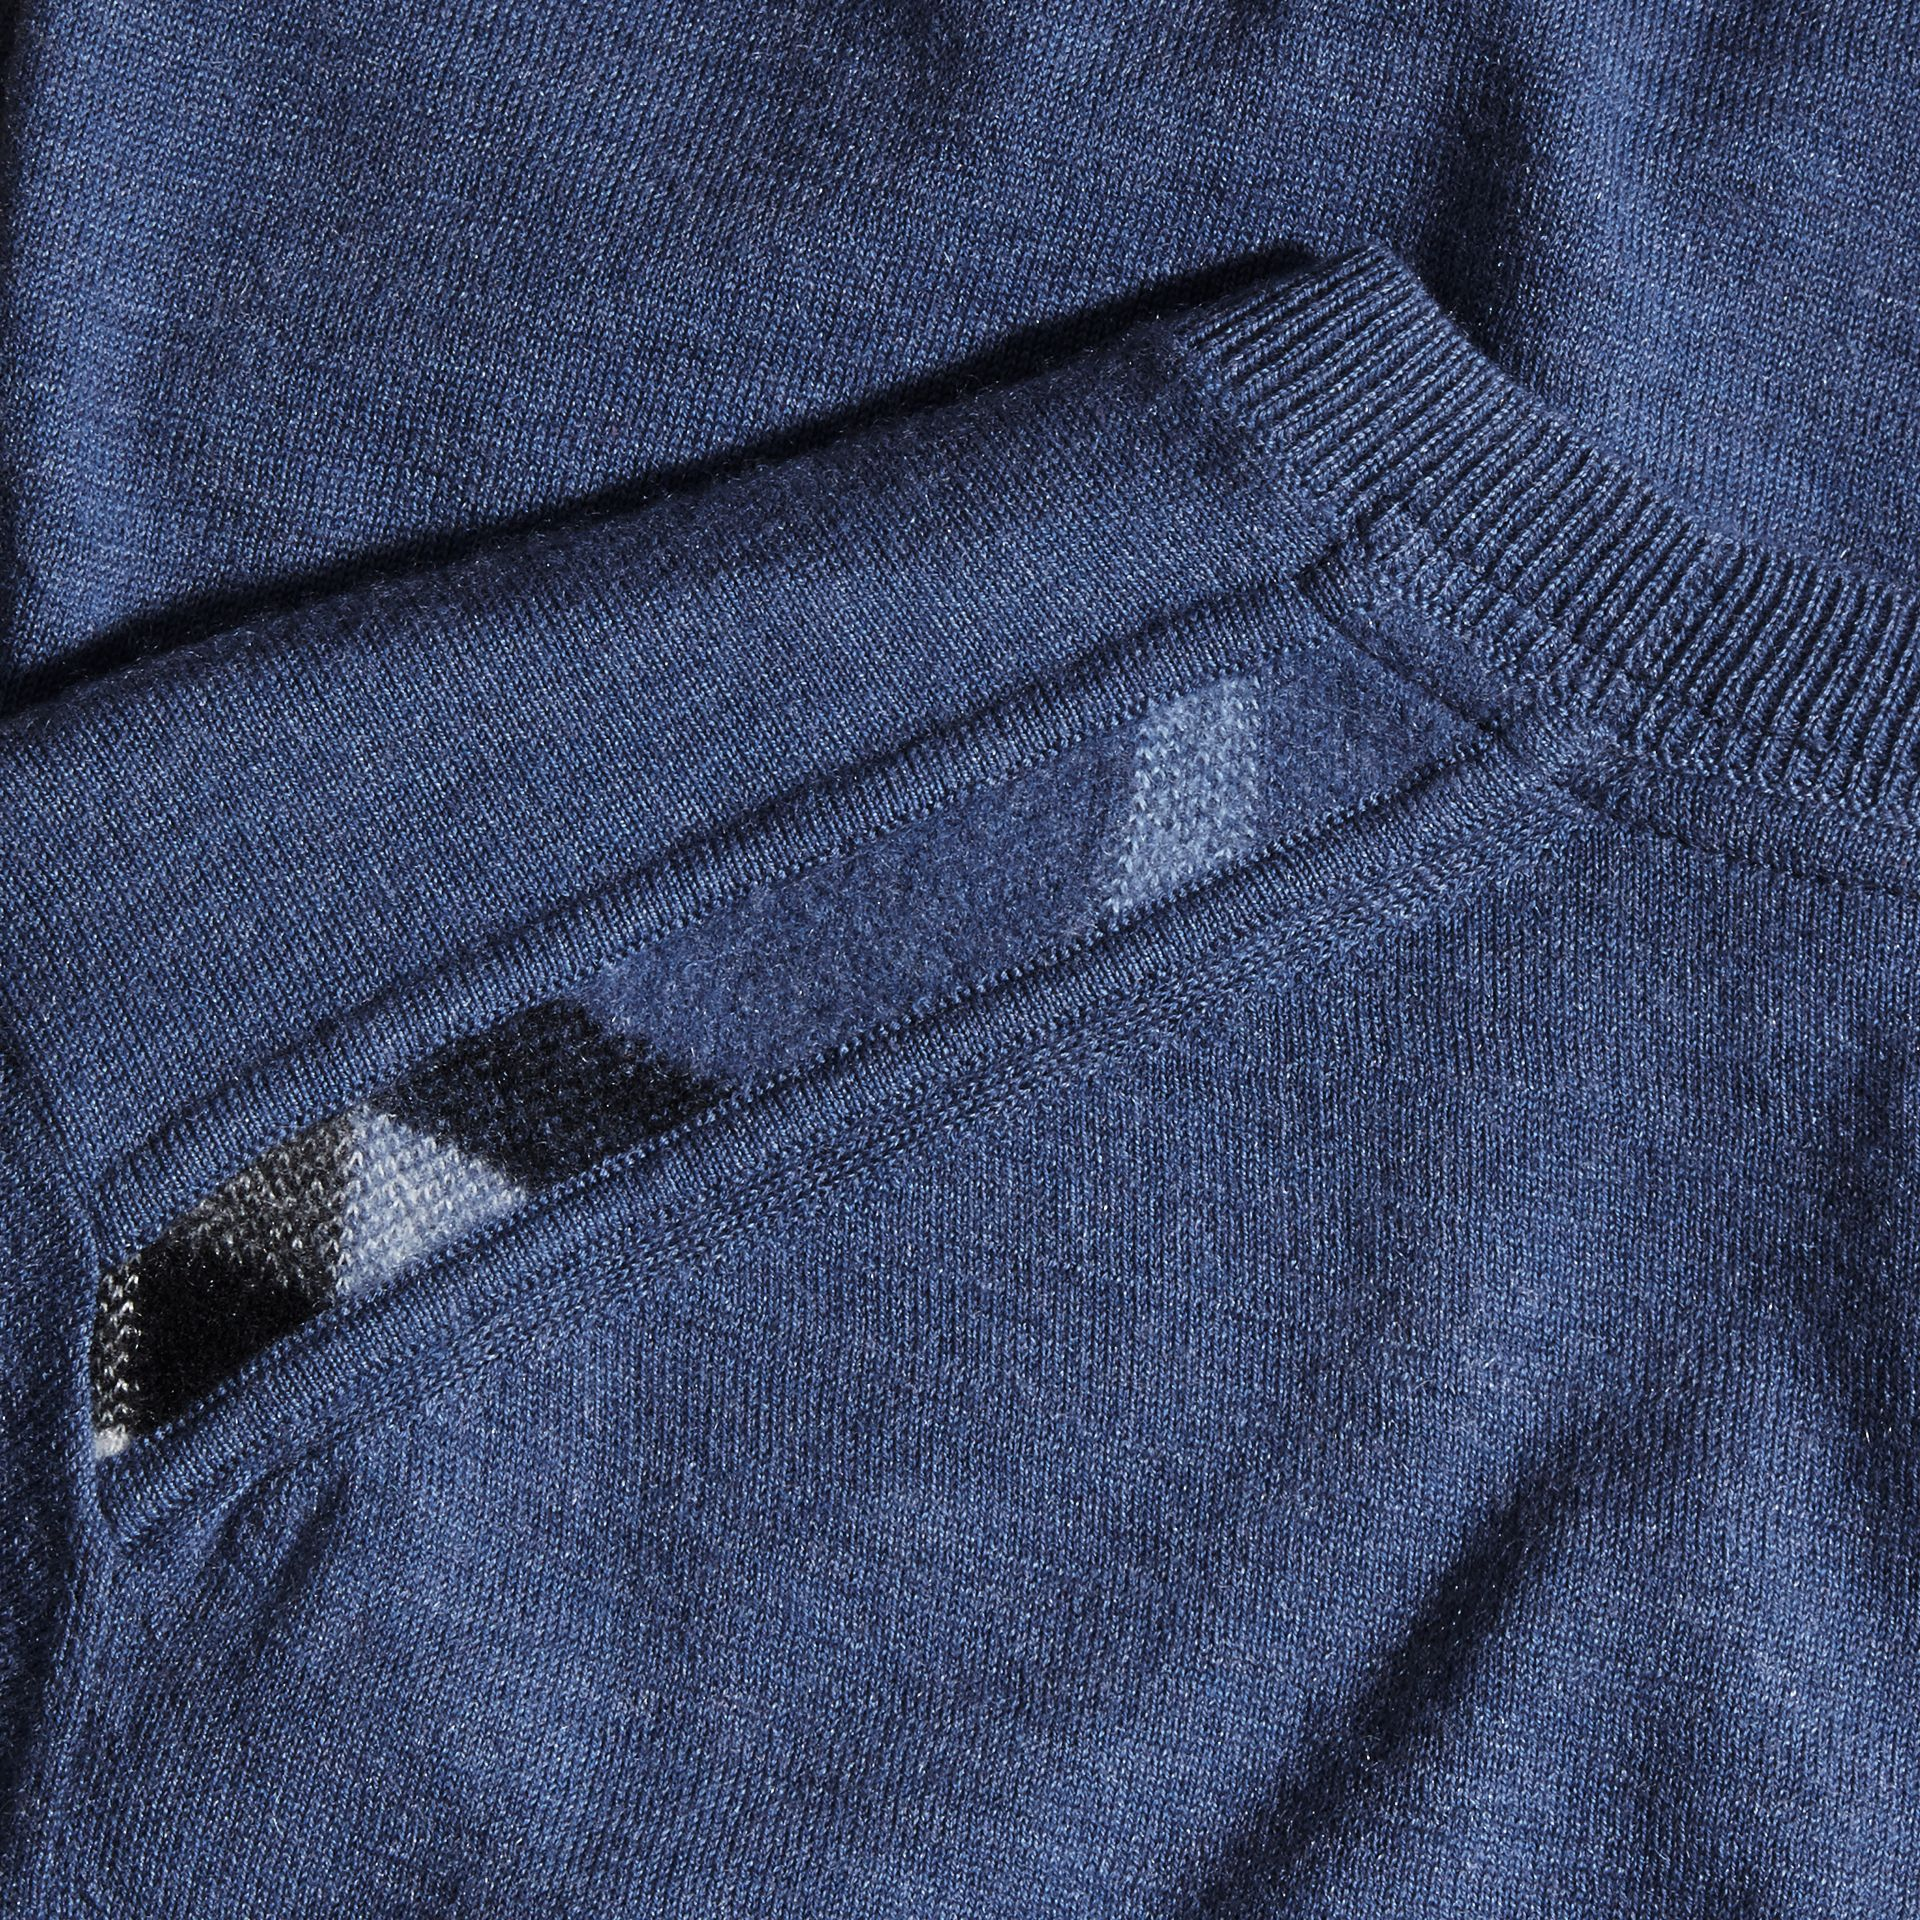 Check Jacquard Detail Cashmere Sweater in Dusty Blue - Men | Burberry - gallery image 1